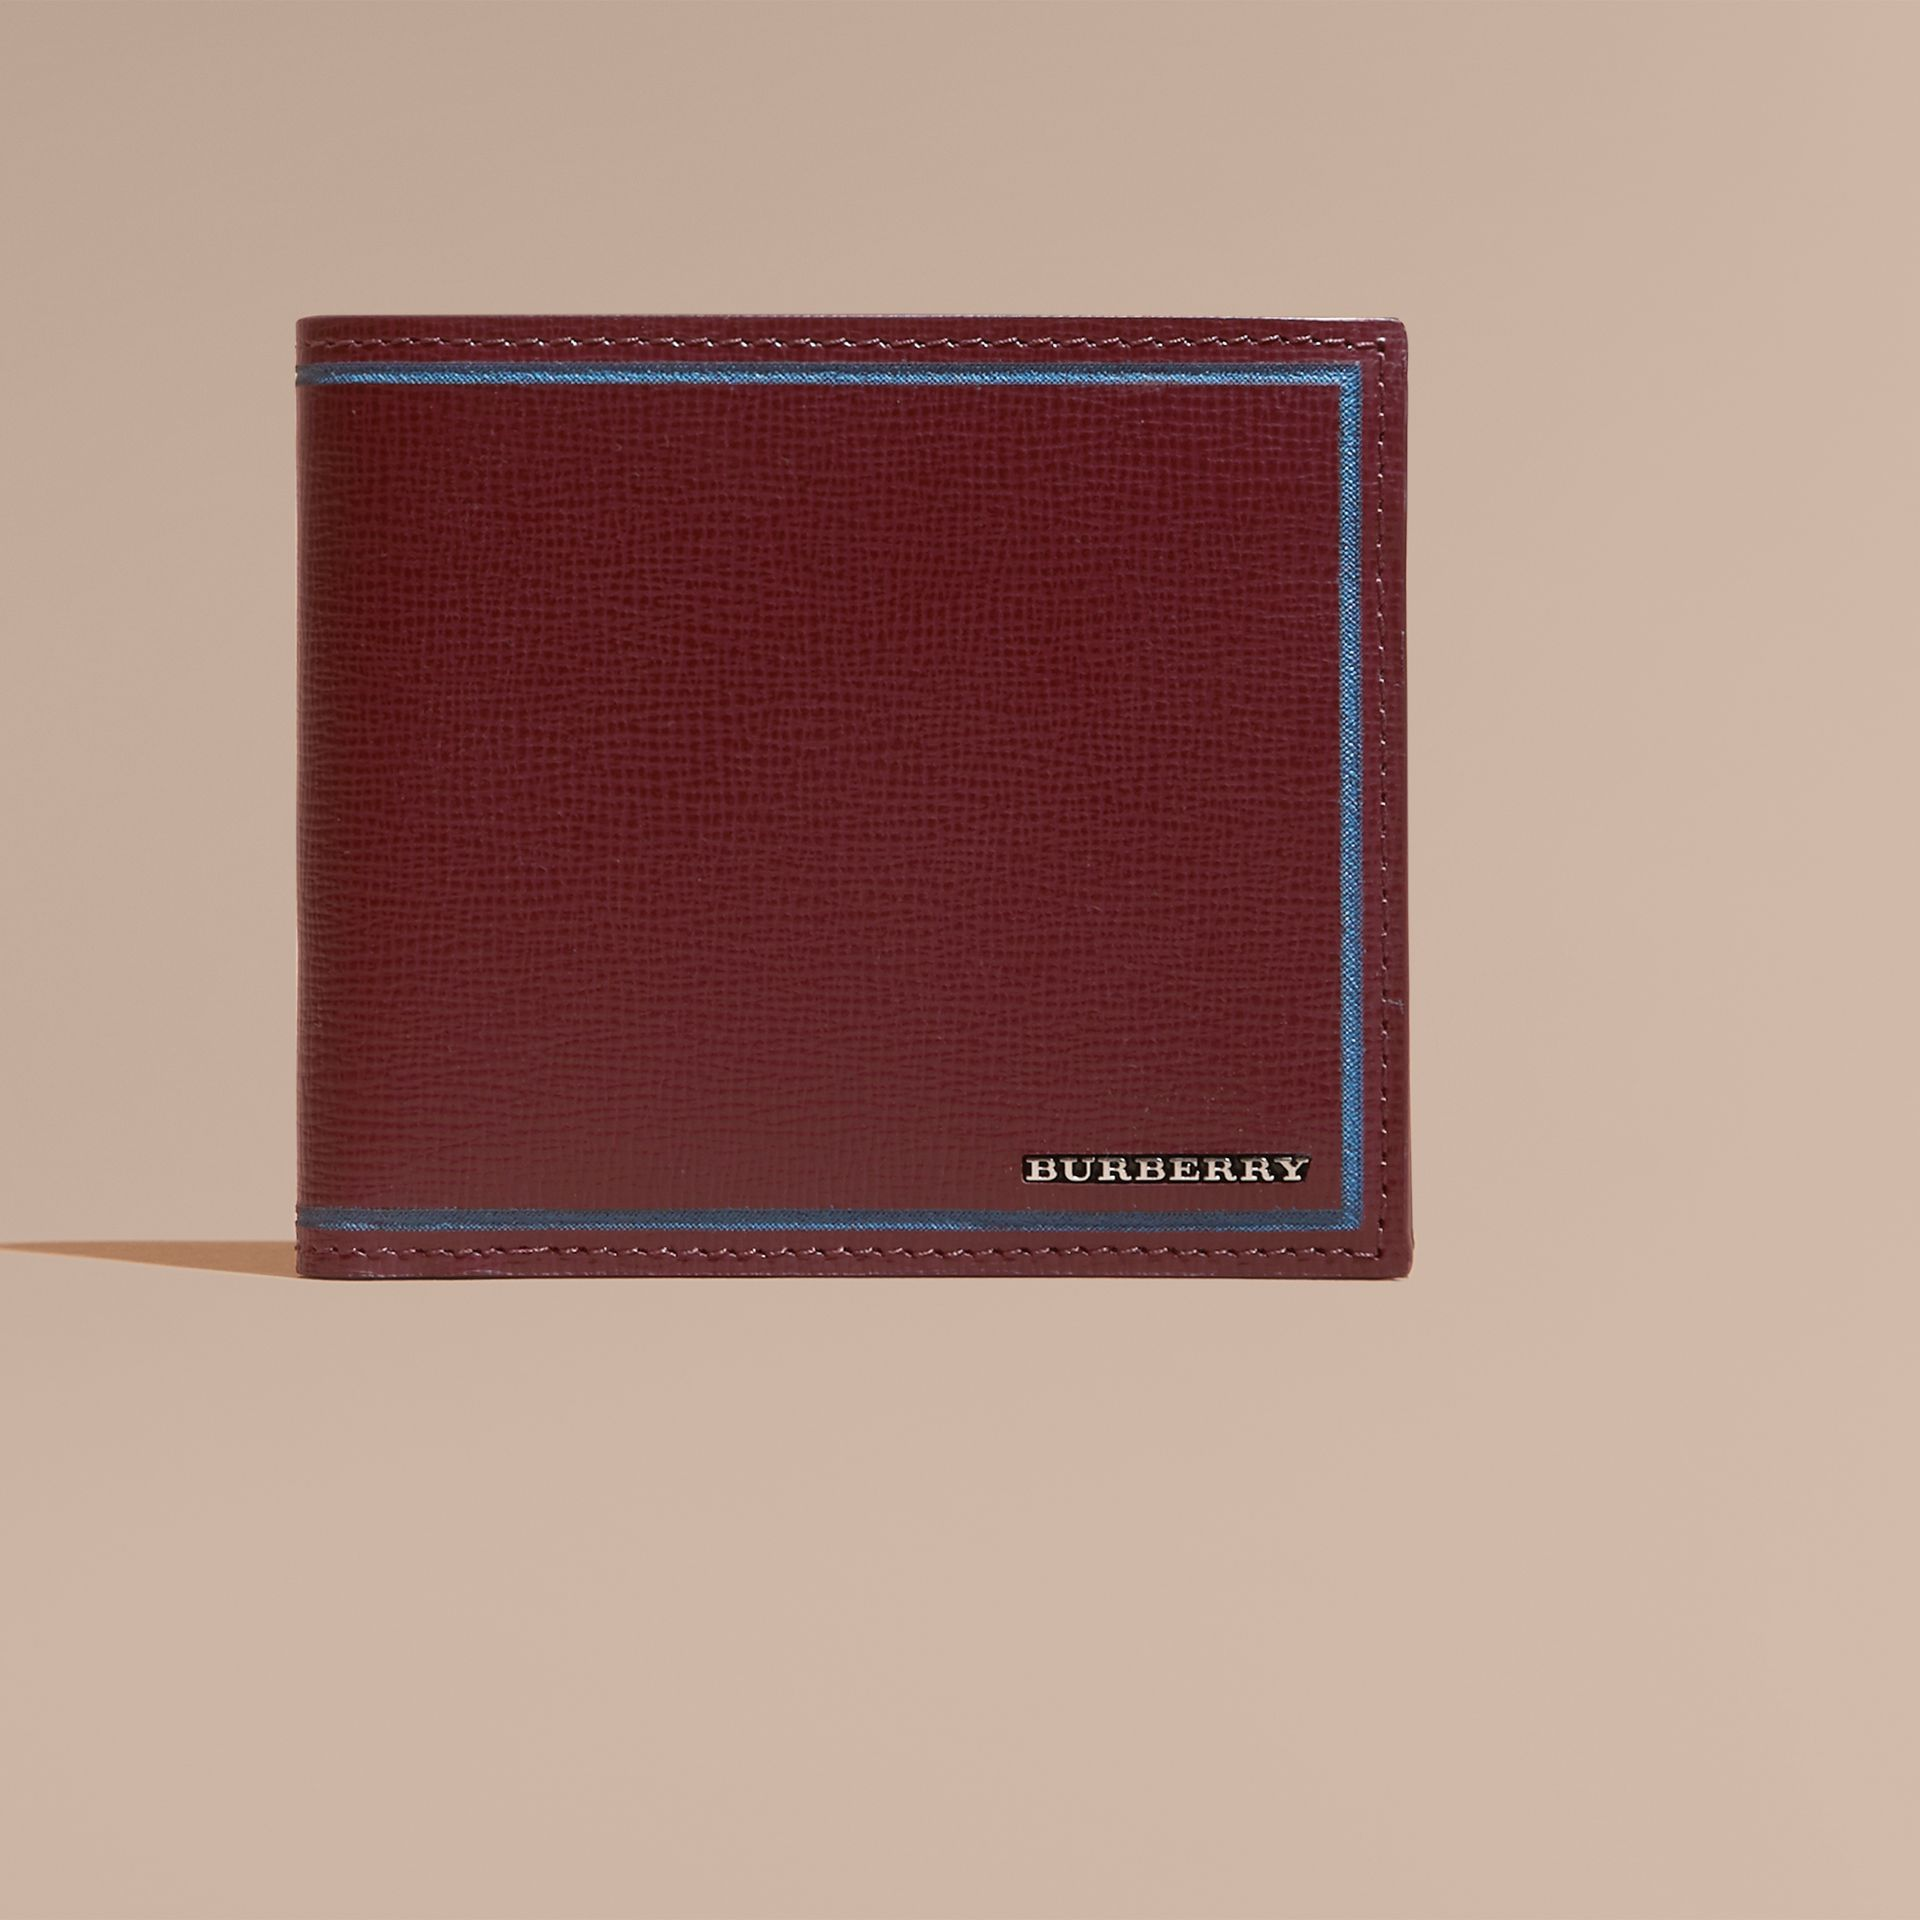 Burgundy red Border Detail London Leather Folding Wallet Burgundy Red - gallery image 3